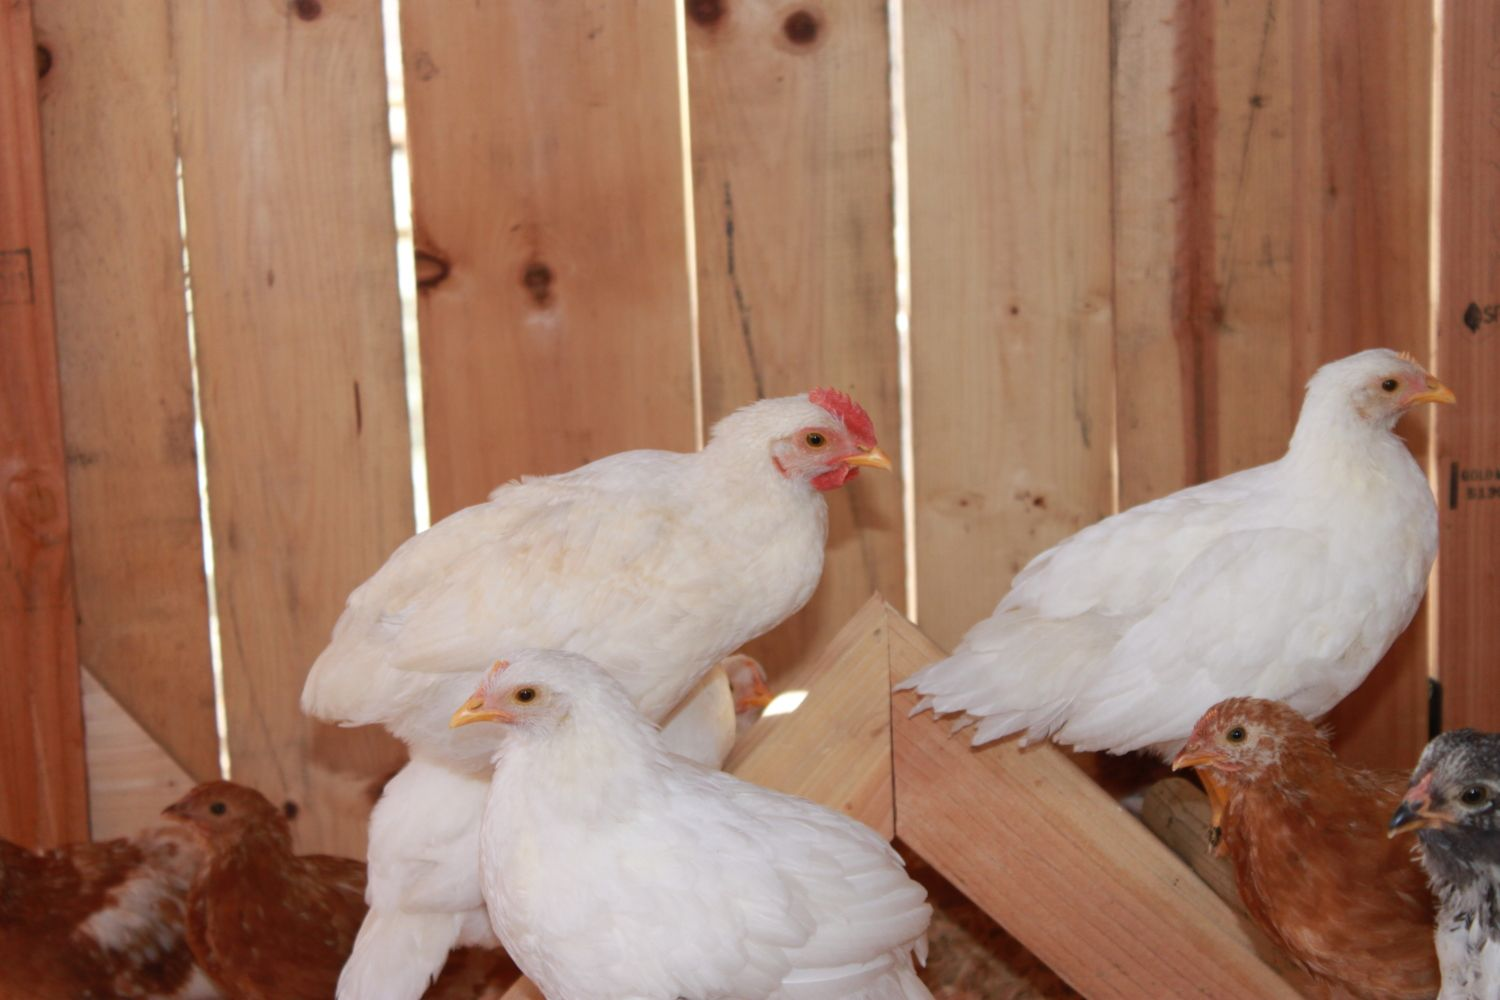 OLD ADOBE's photos in Pullet or Cockerel White Leghorn